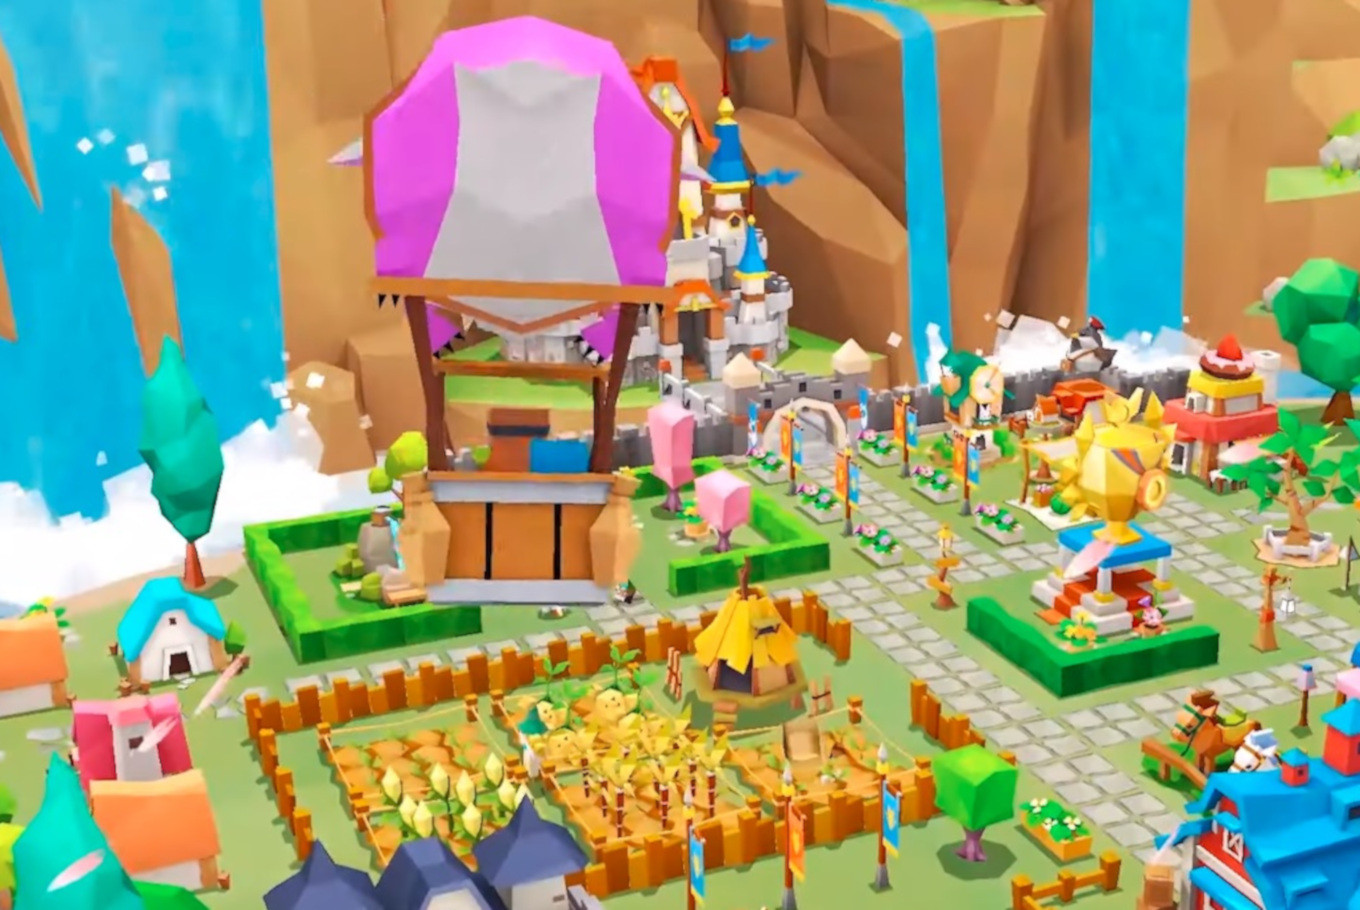 Online game 'Fantasy Town' launches educational platform